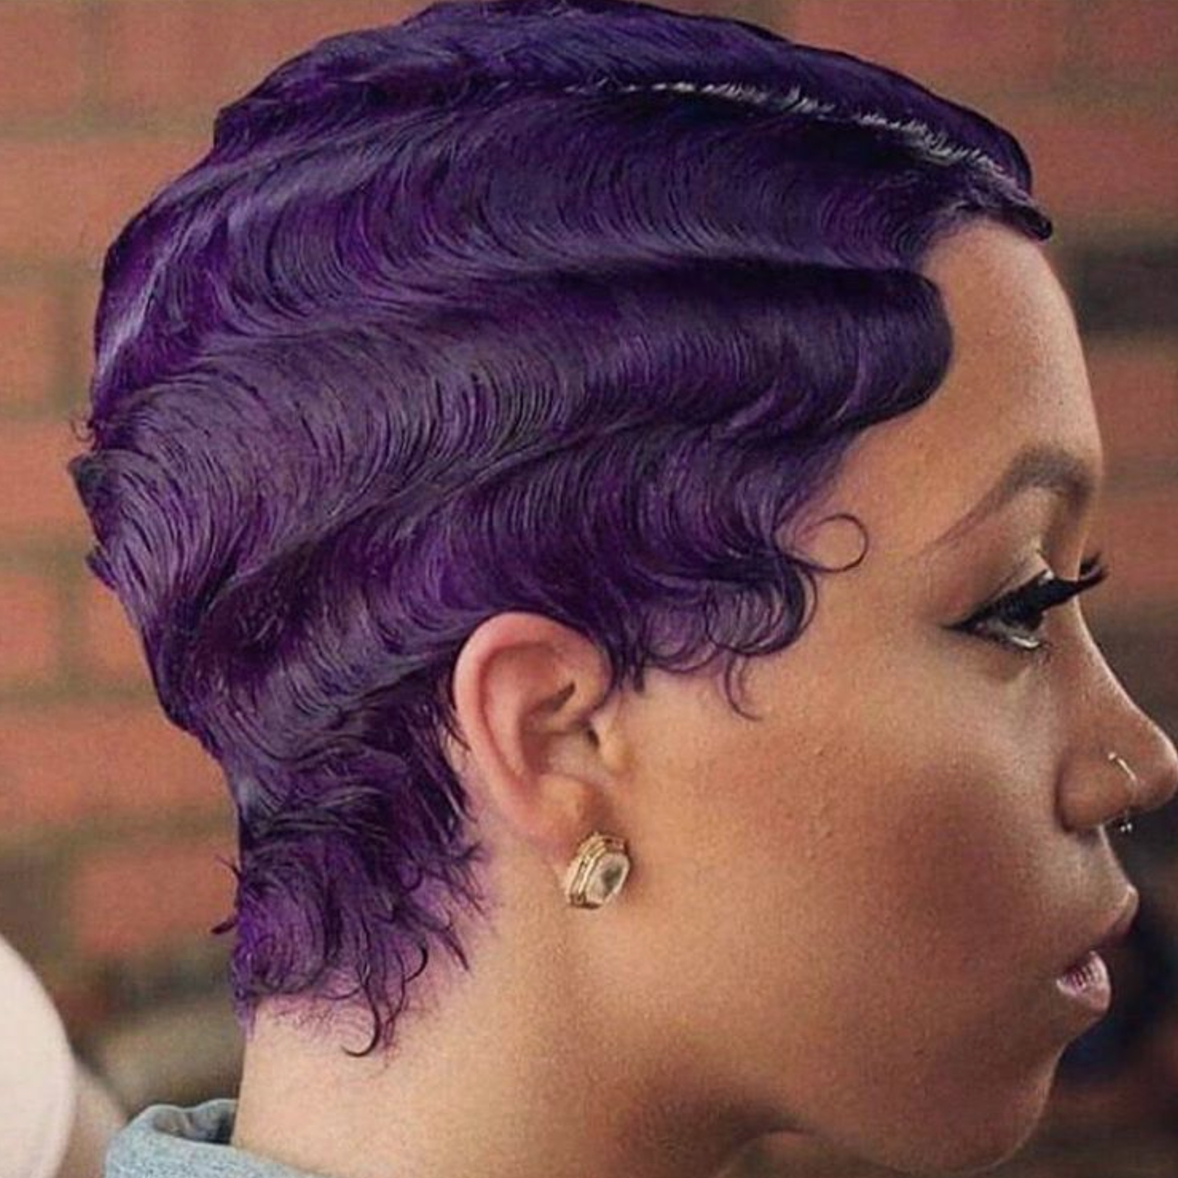 Hairstyle Ideas For Short Natural Hair – Essence For Purple And Black Short Hairstyles (View 14 of 25)